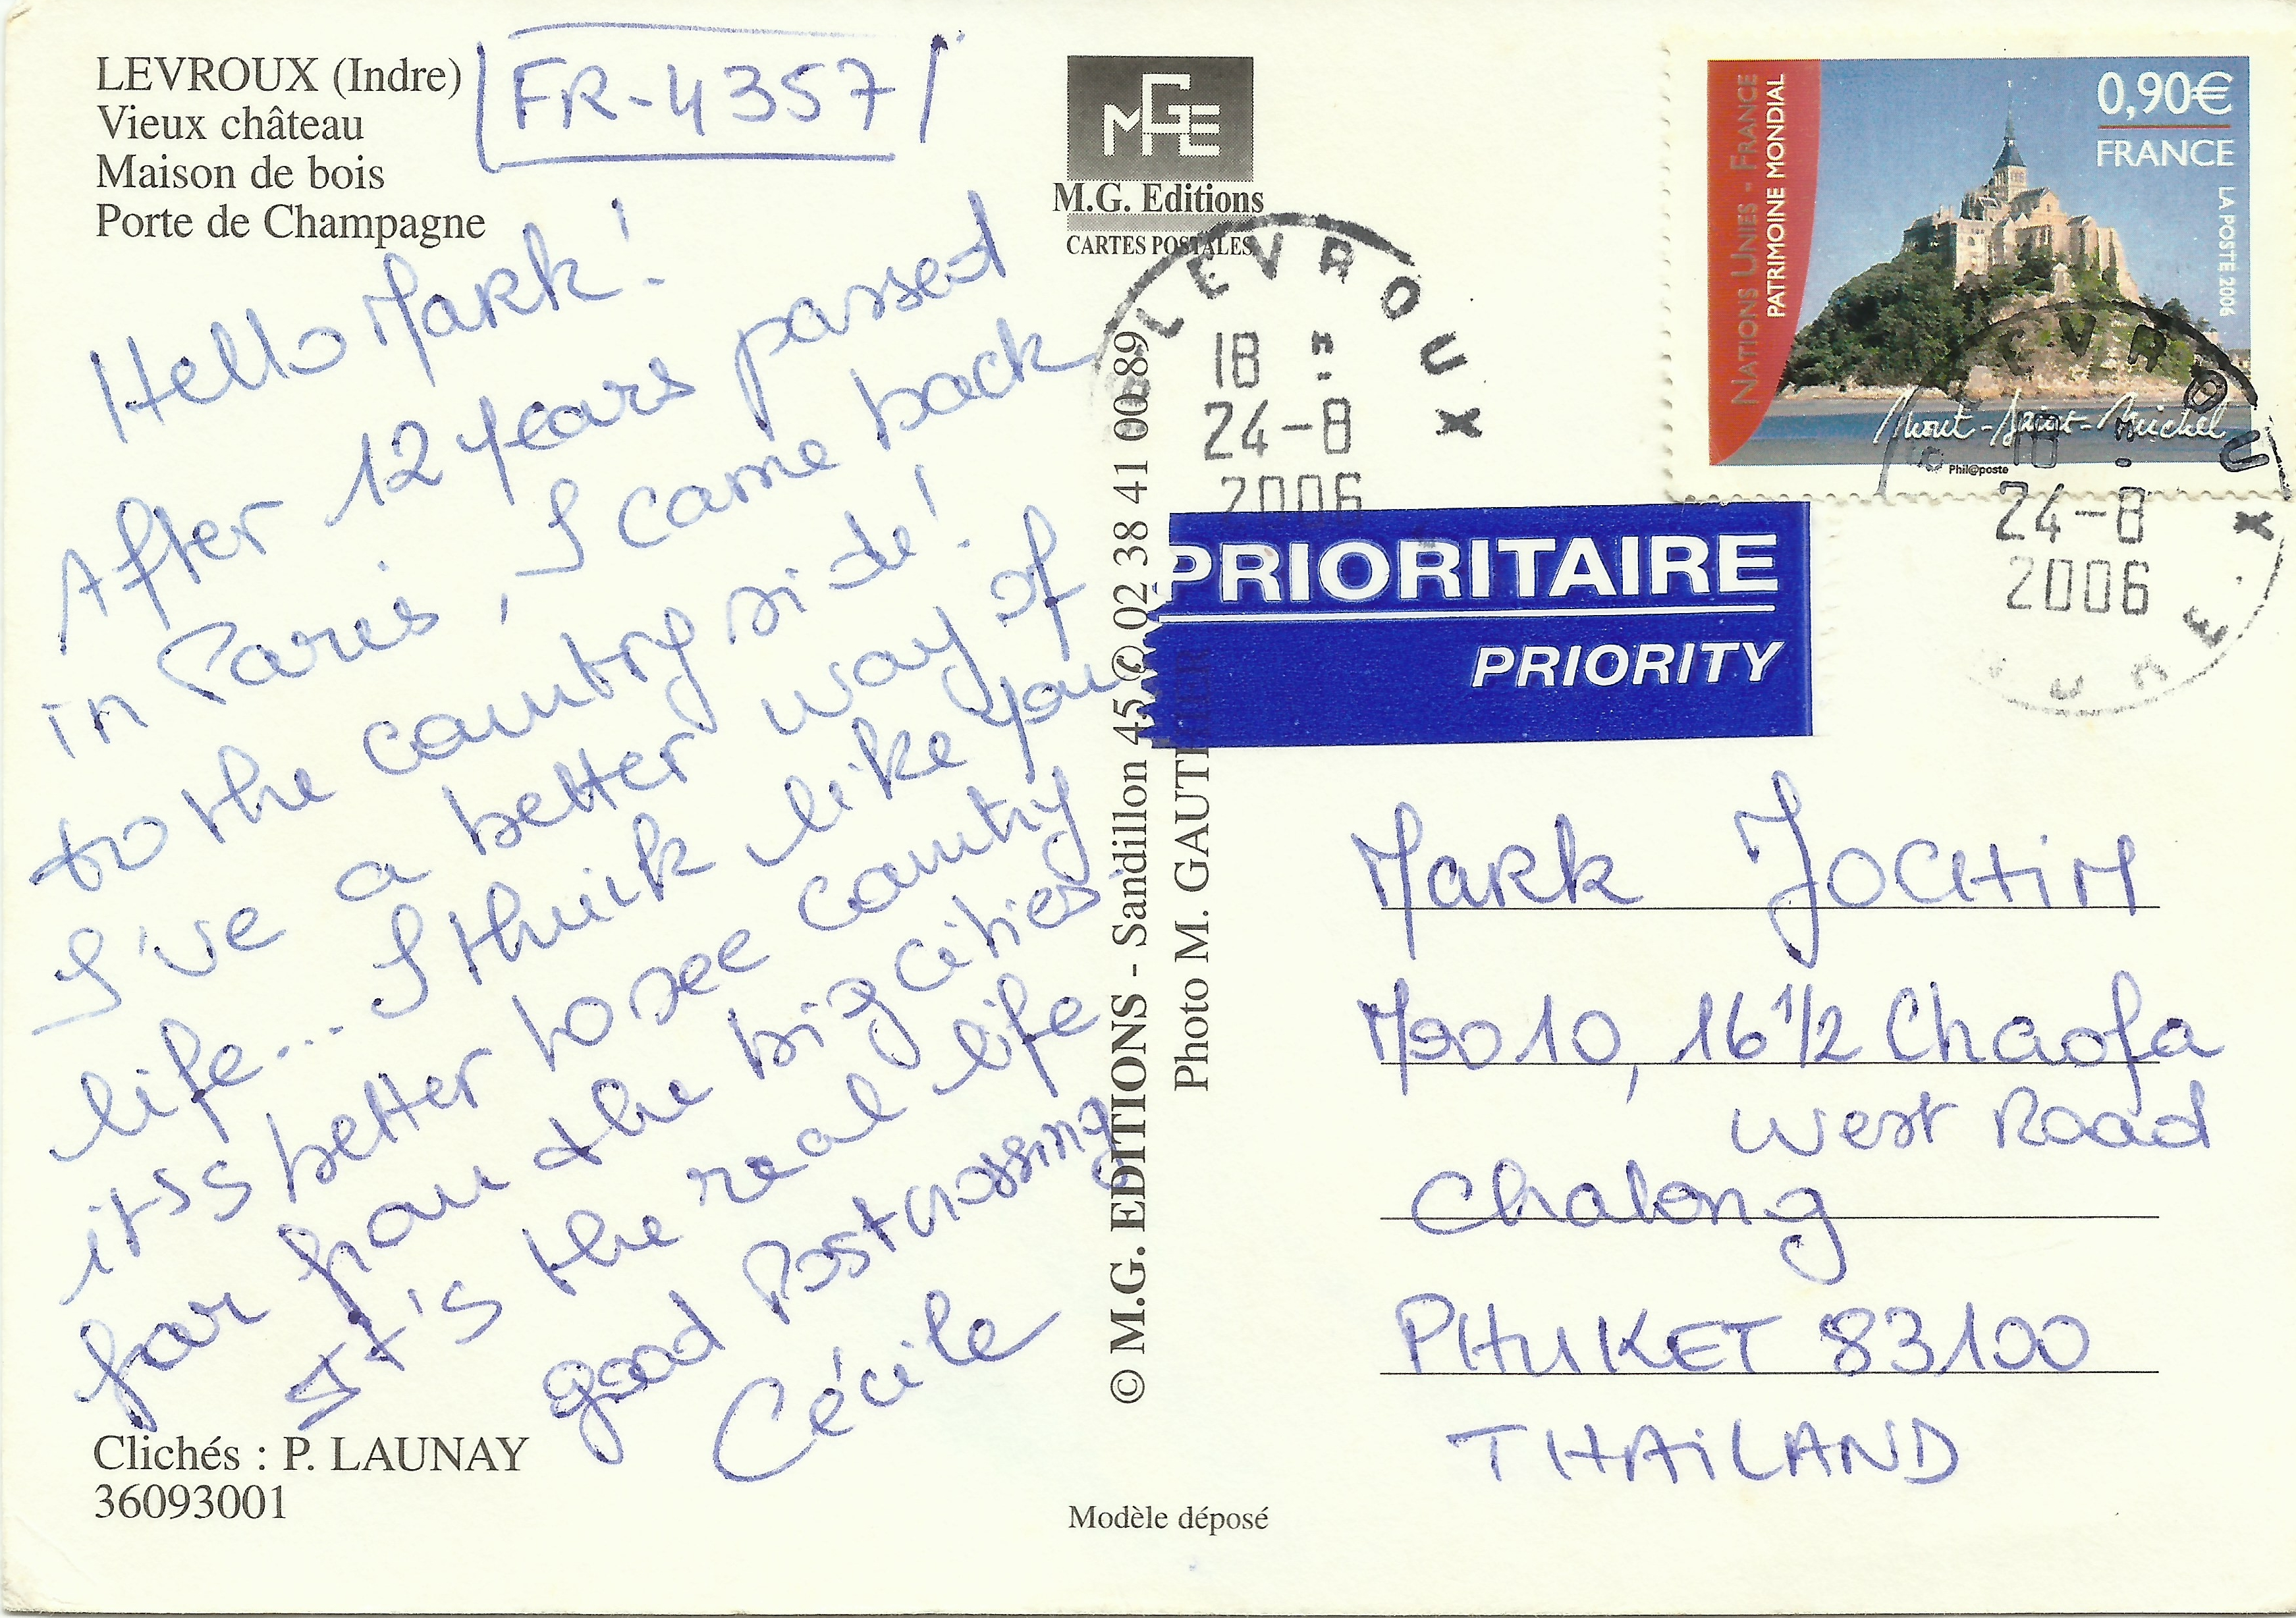 Postcard from Levroux, France, bearing a copy of Scott #3220. Received in Thailand on September 2, 2006.